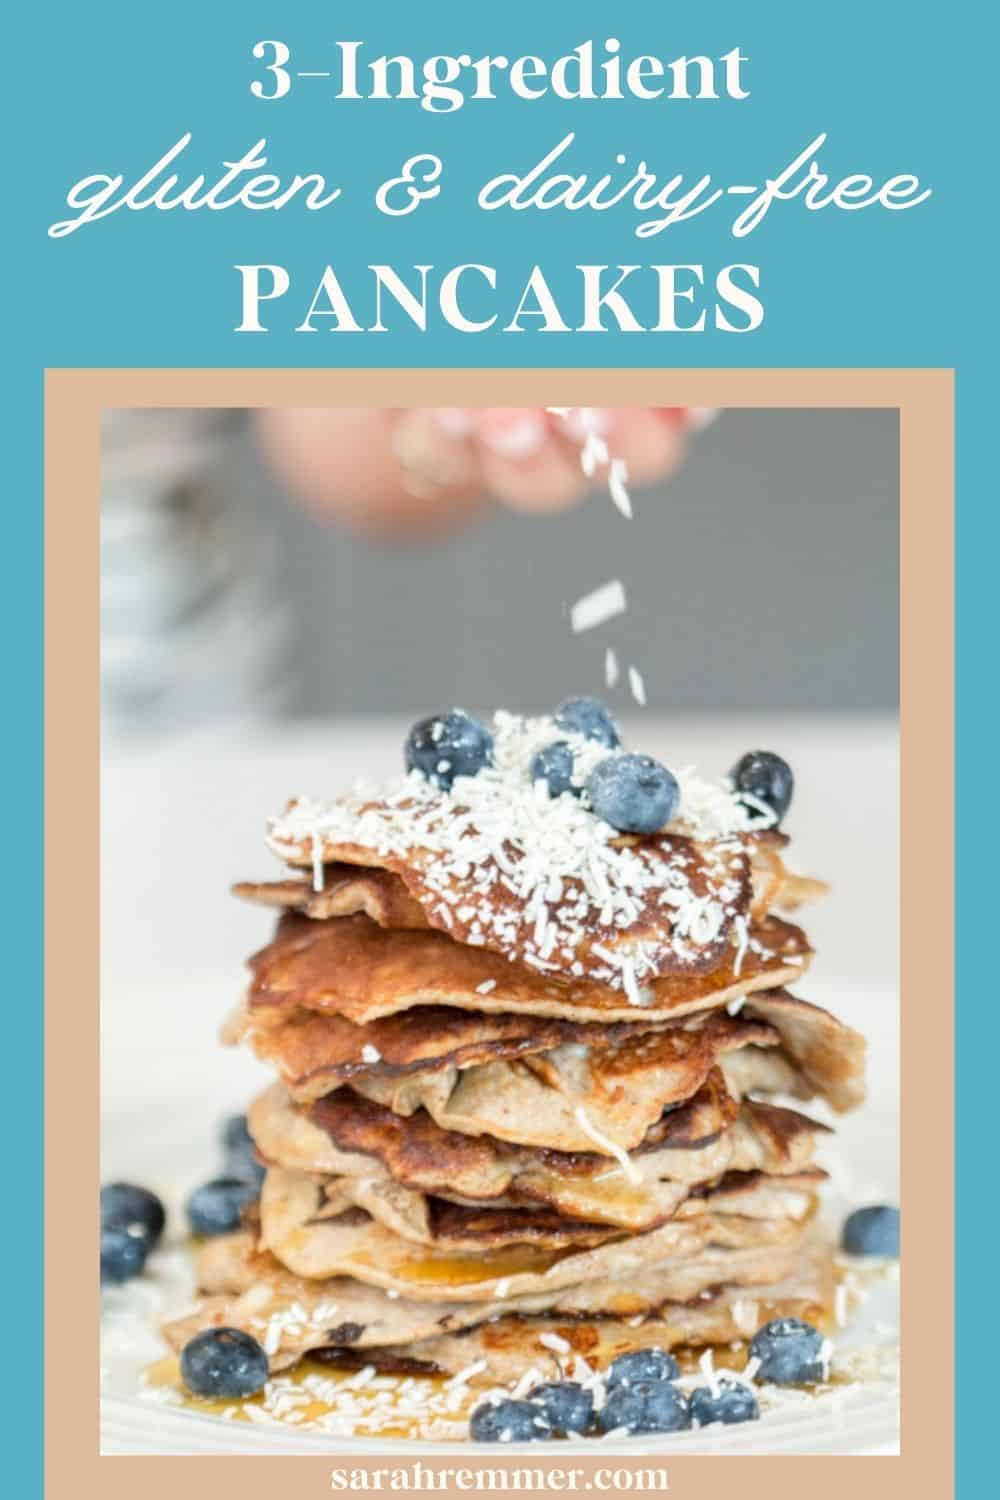 These flourless 3-ingredient banana pancakes are nutrient-rich, delicious and easy – a dietitian mom's dream!